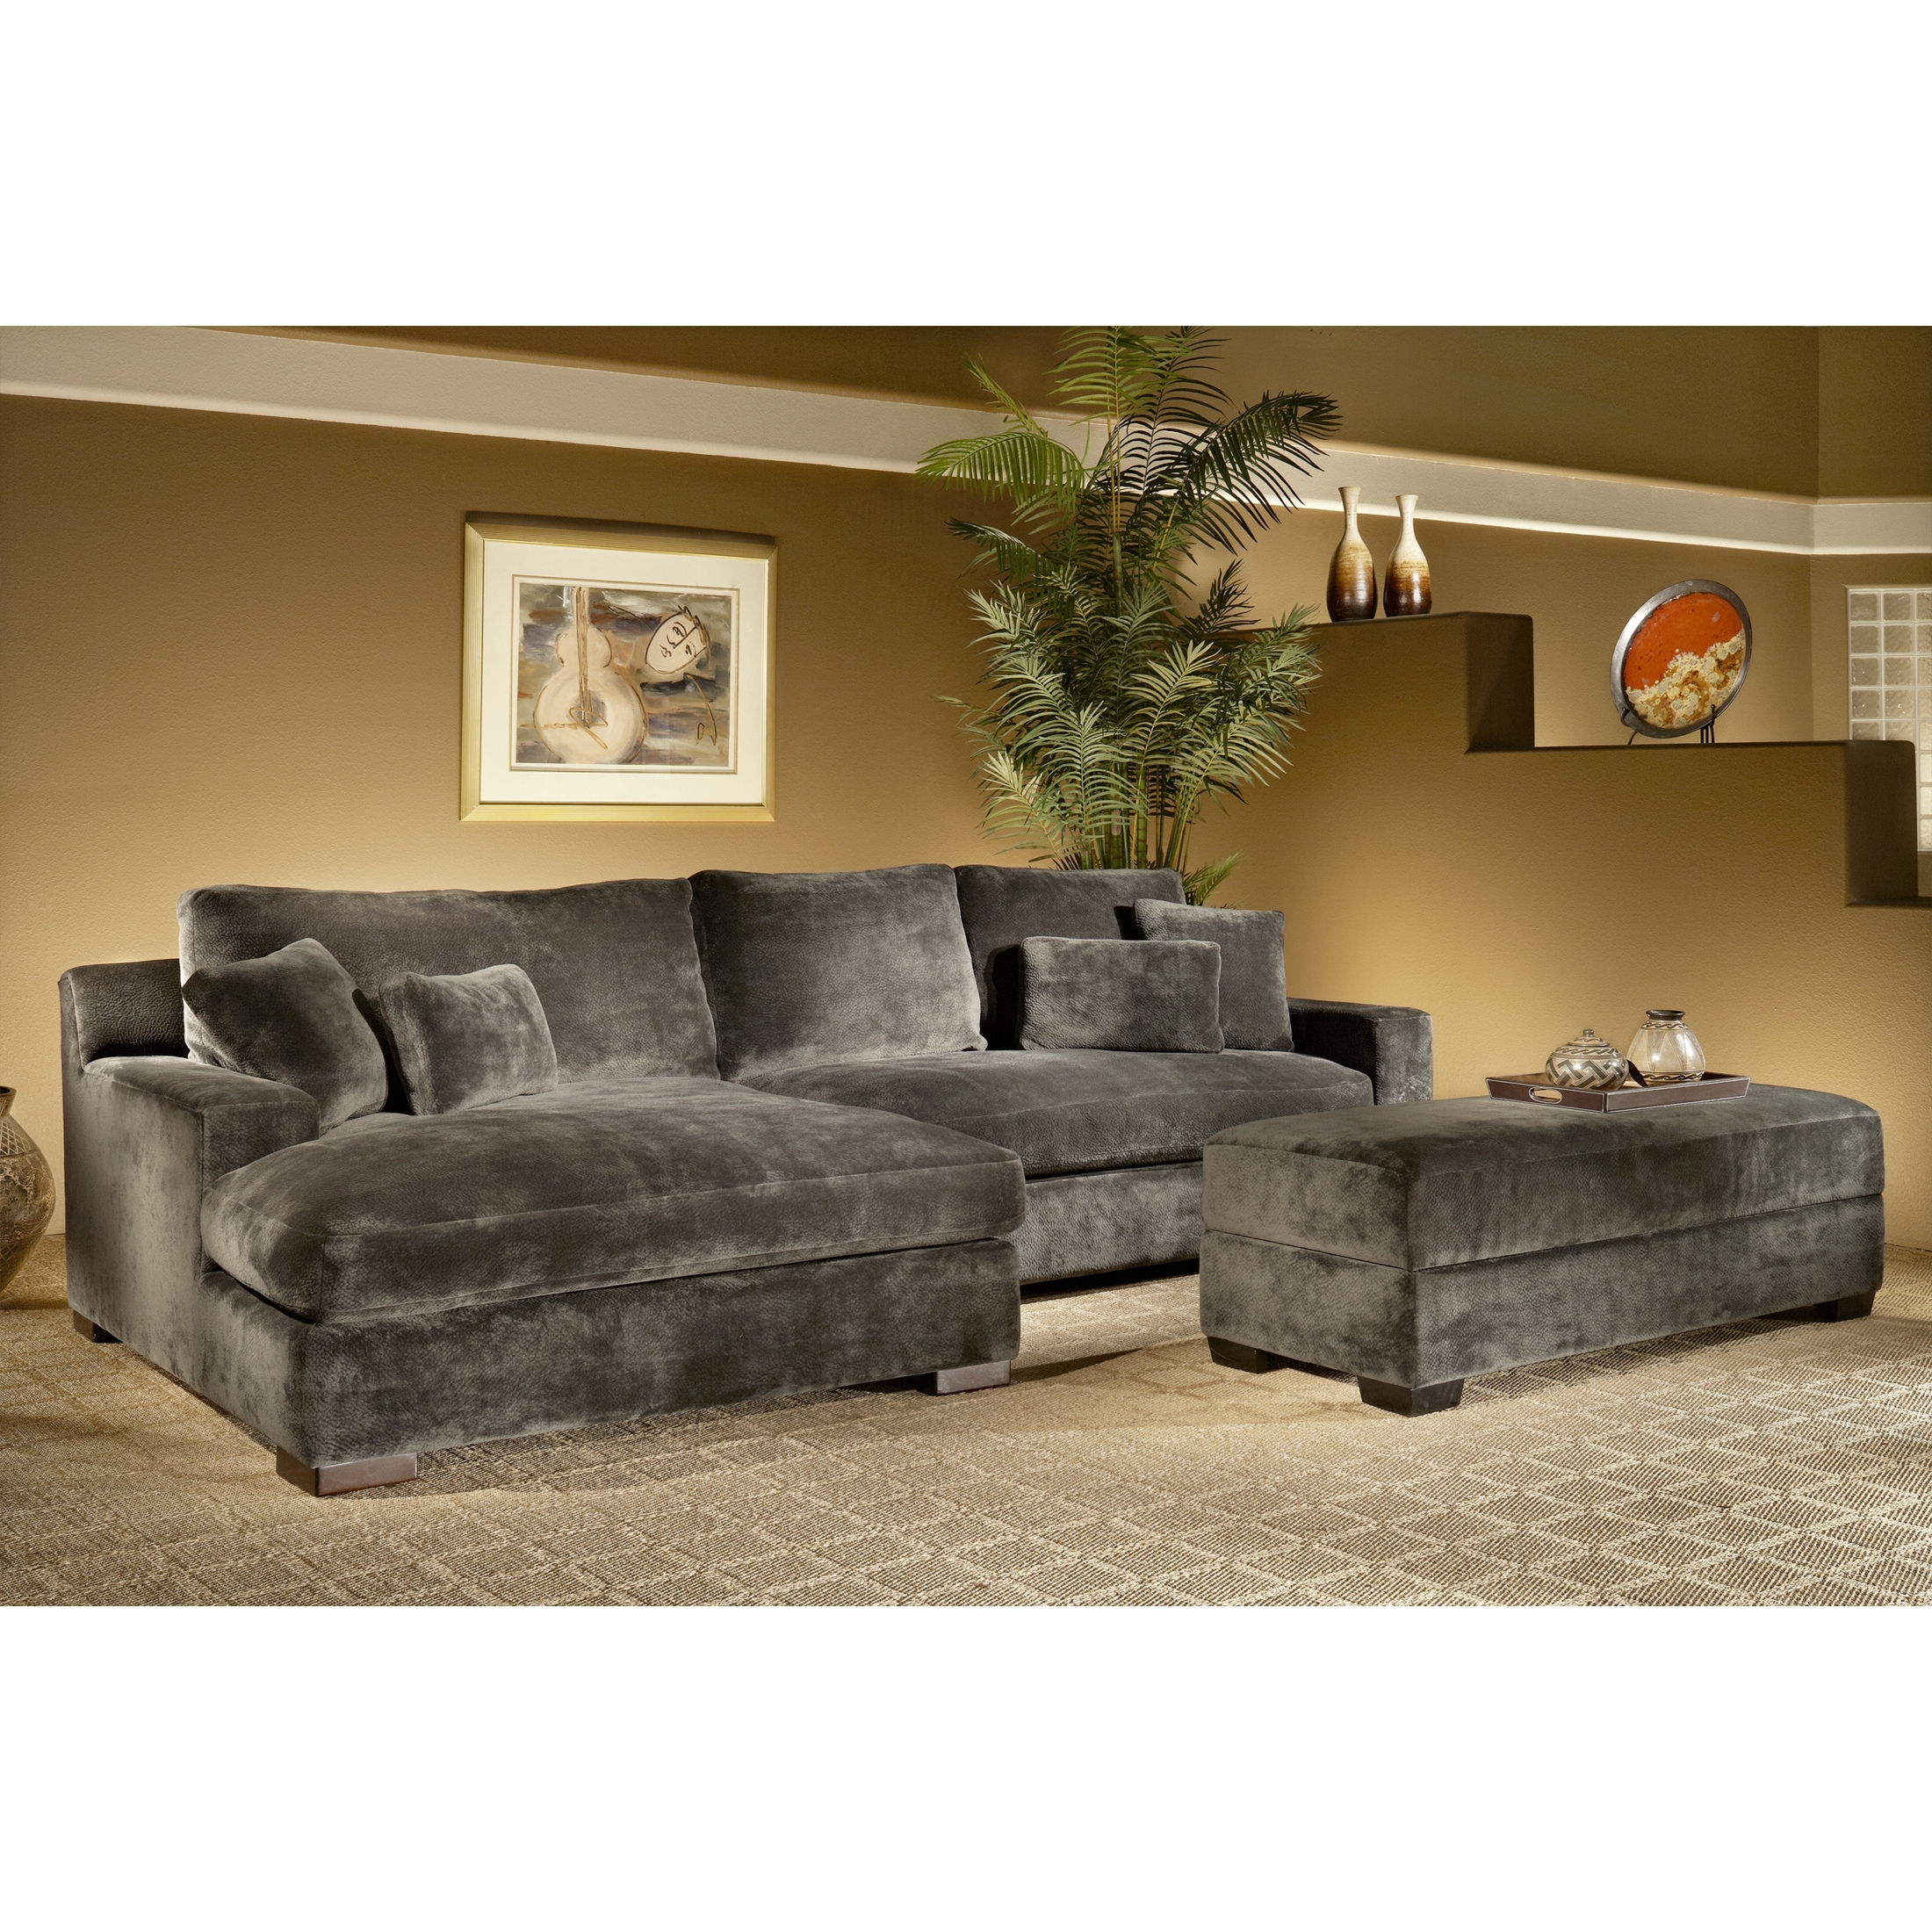 The Casual Contemporary Doris Two Piece Chaise Sectional Is Inside Famous Kingston Ontario Sectional Sofas (View 4 of 20)